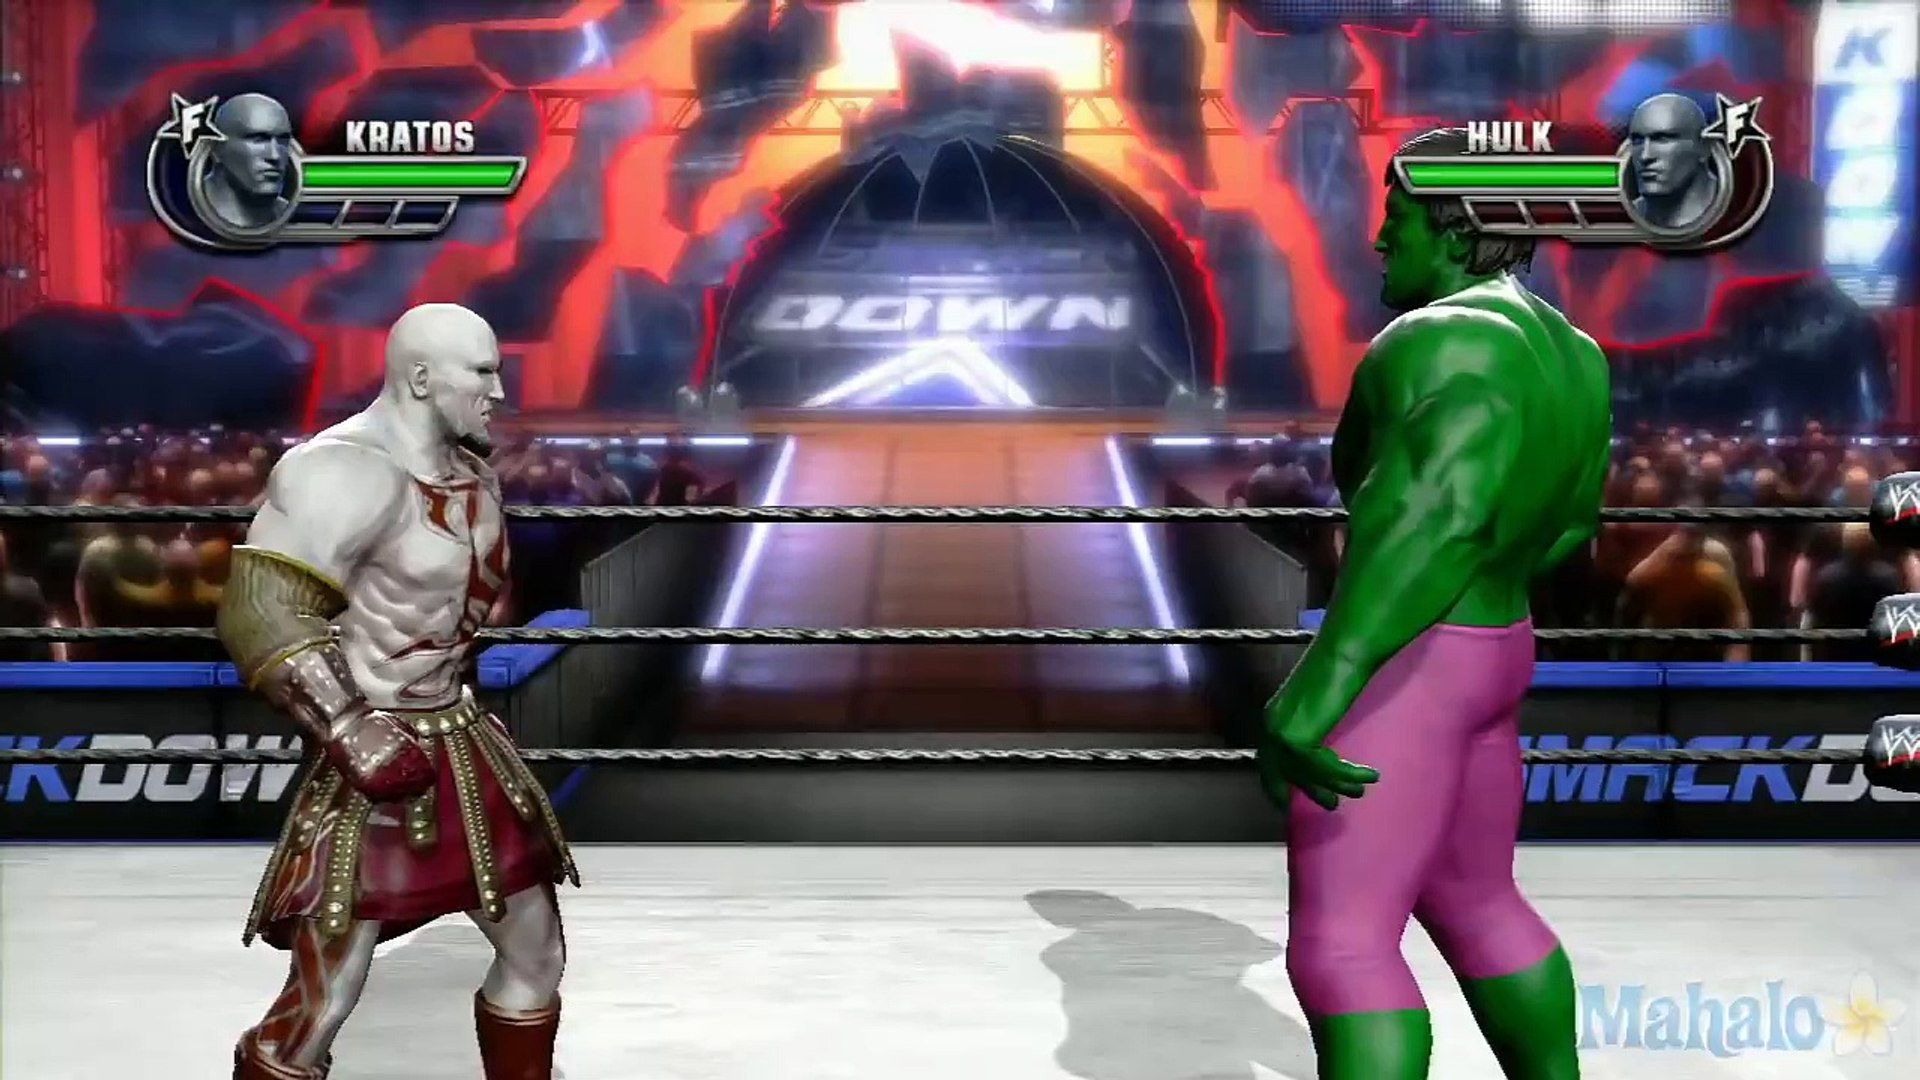 Wwe All Stars Grudge Match Kratos Vs The Hulk Video Dailymotion